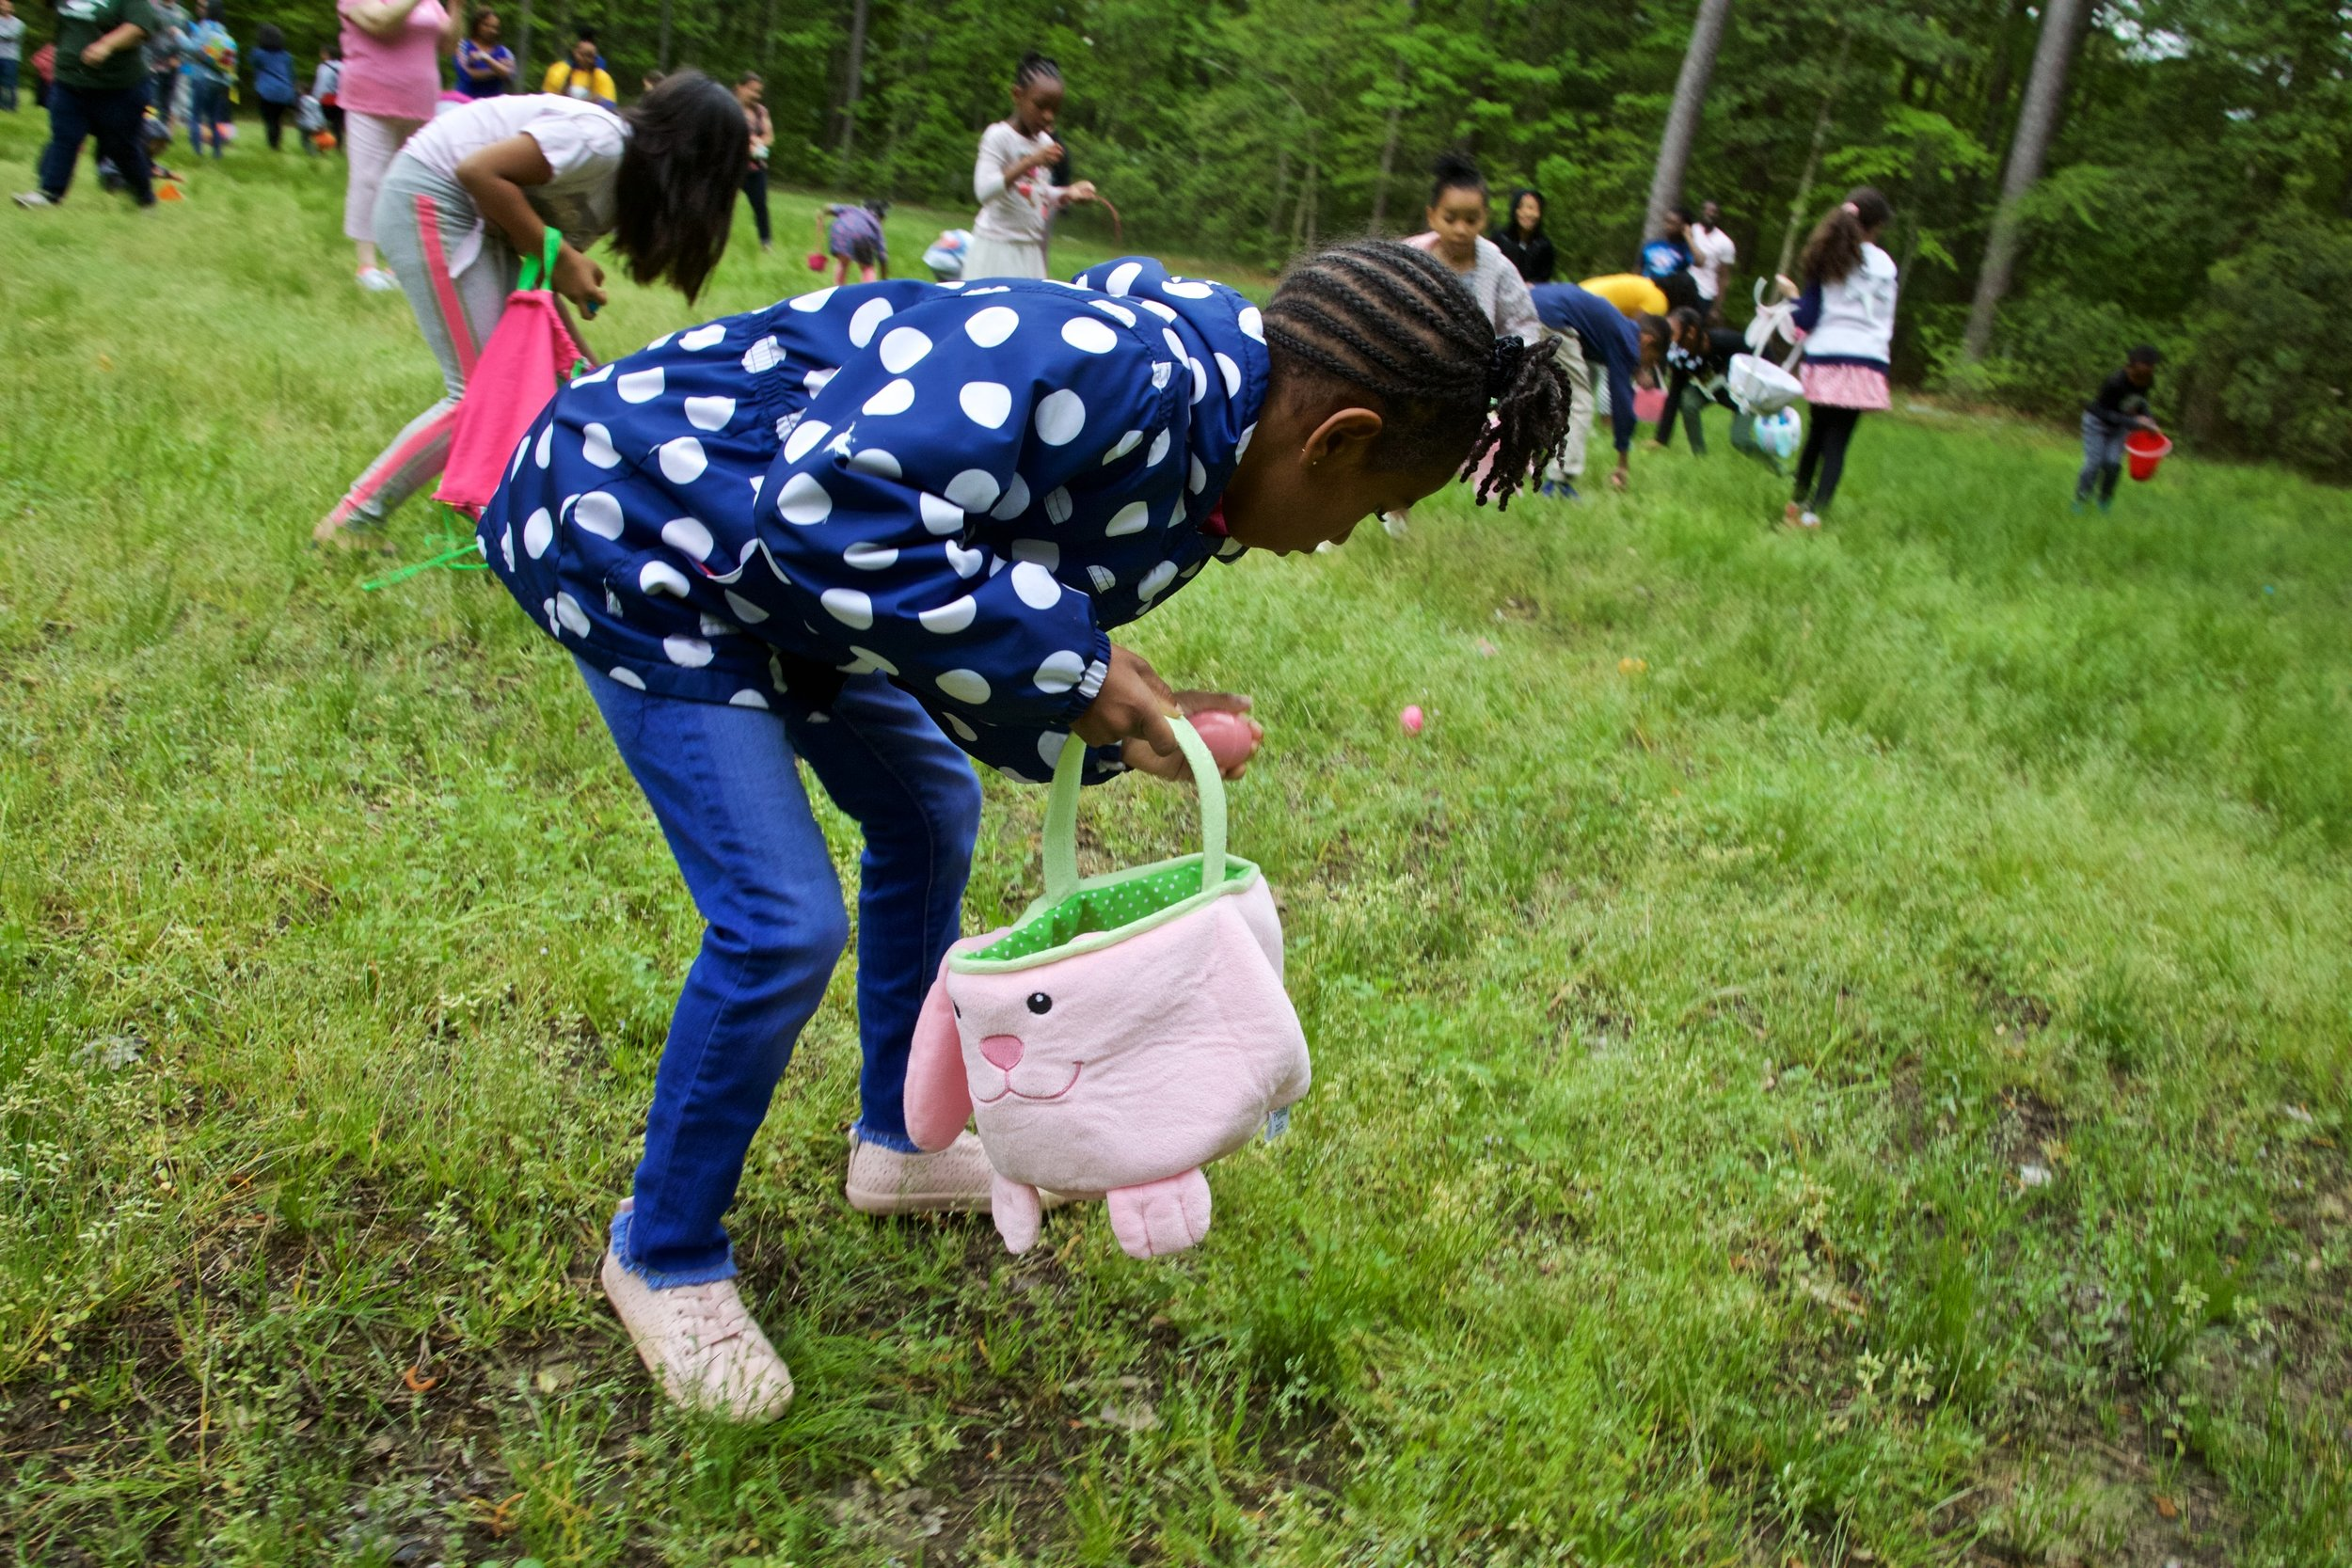 2019.4.20 Raleigh NPHC Easter Egg Hunt by StanChambersJr Photography 27.jpg